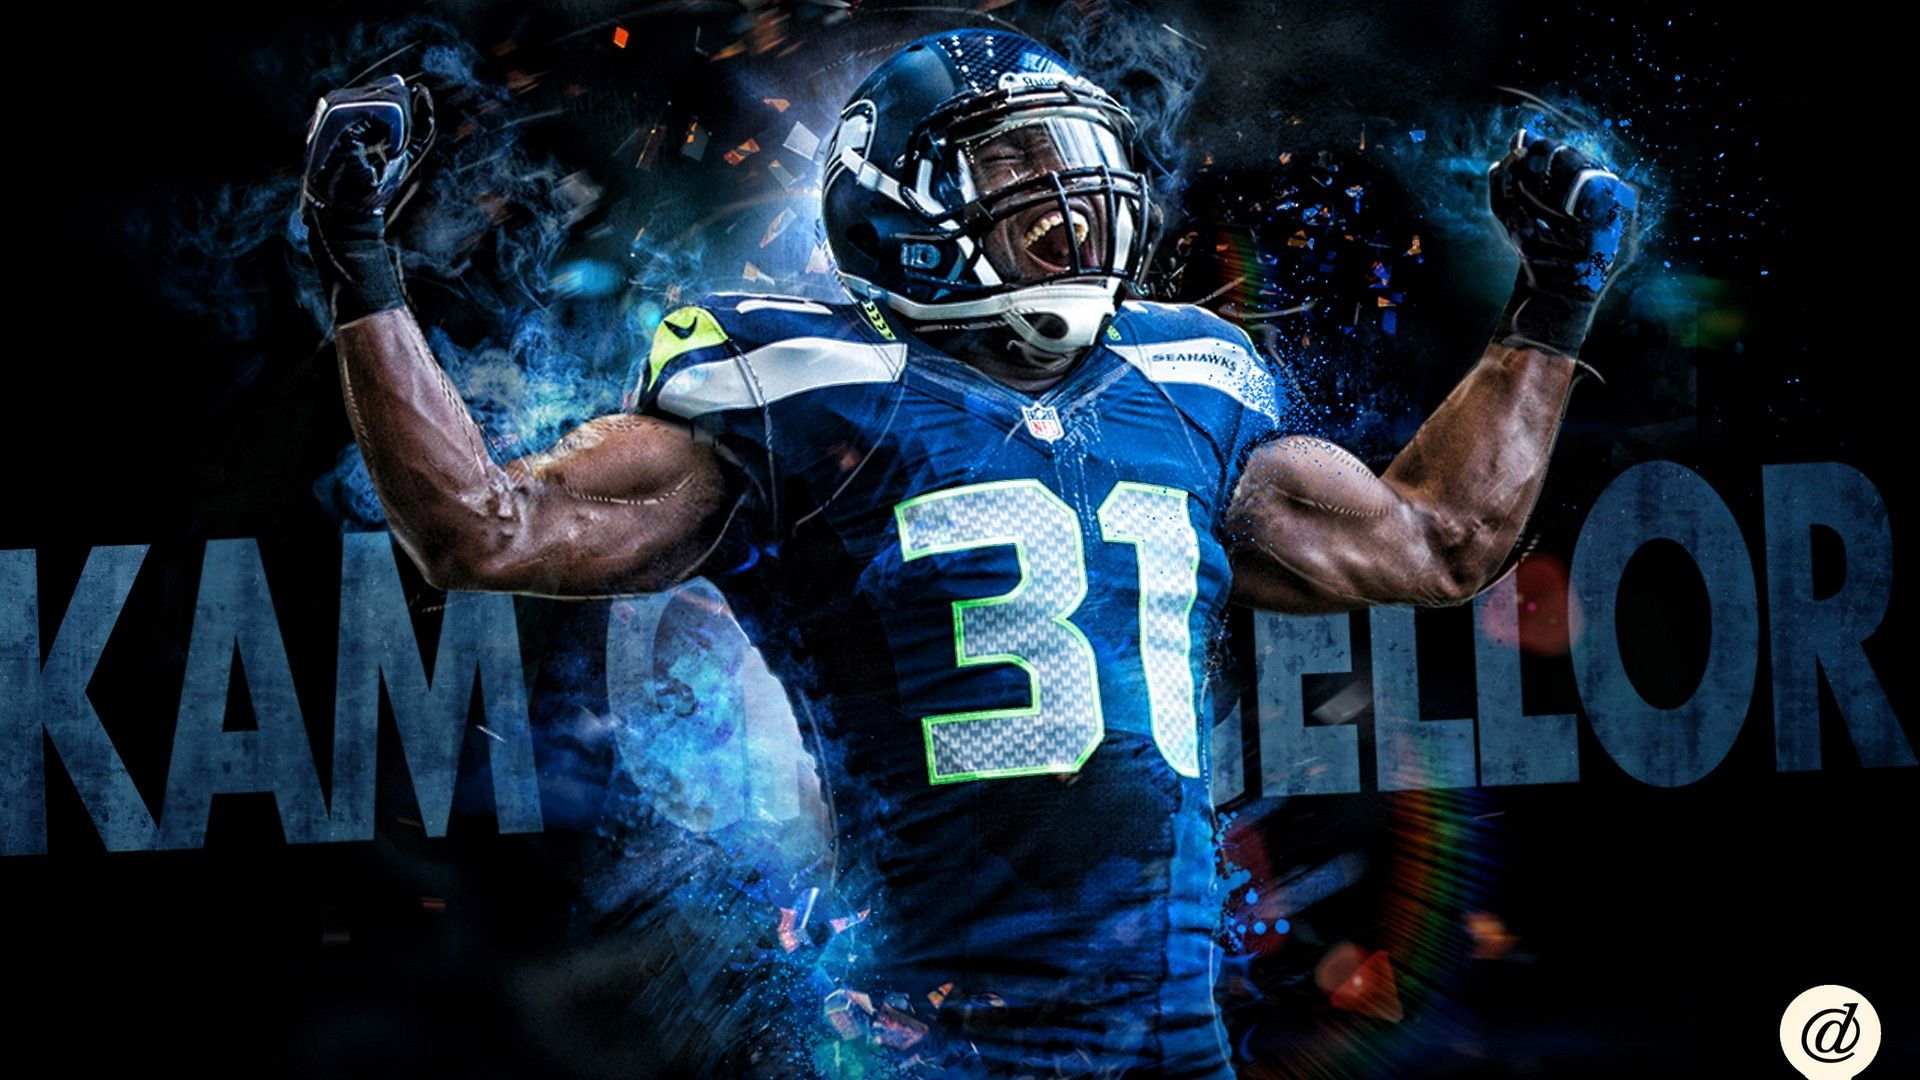 Wallpaper Desktop Nfl Players Hd 2020 Nfl Football Wallpapers Nfl Football Wallpaper Football Wallpaper Seahawks Football